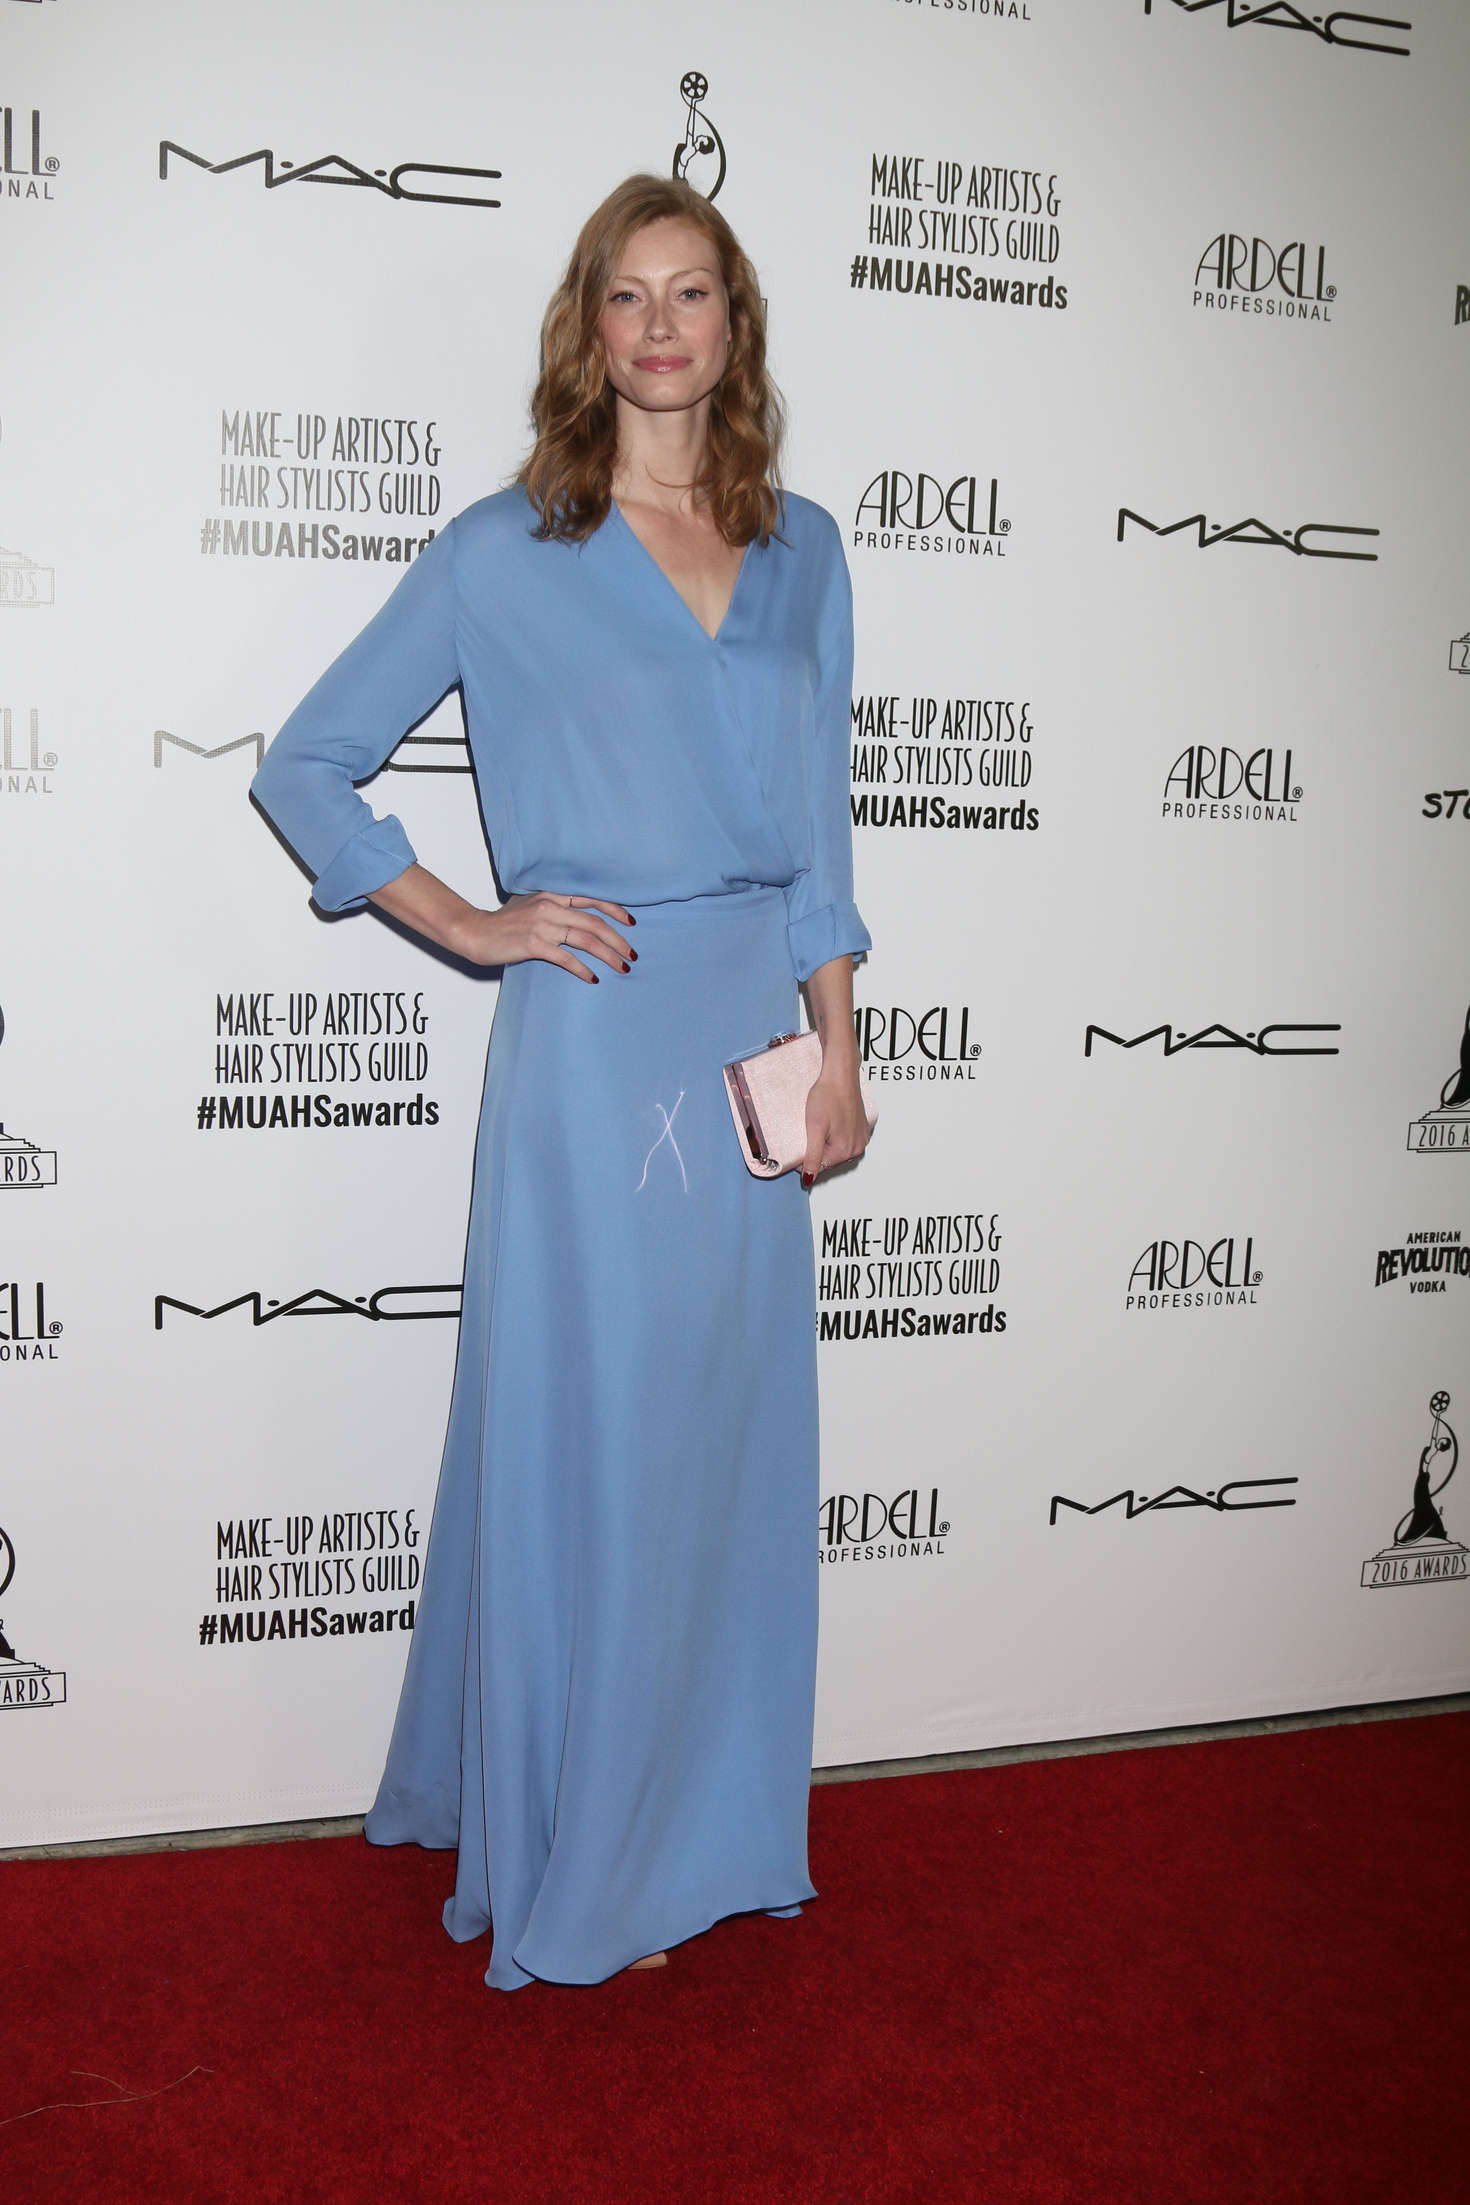 Alyssa Sutherland Make-Up Artist and Hair Stylist Guild Awards in Los Angeles